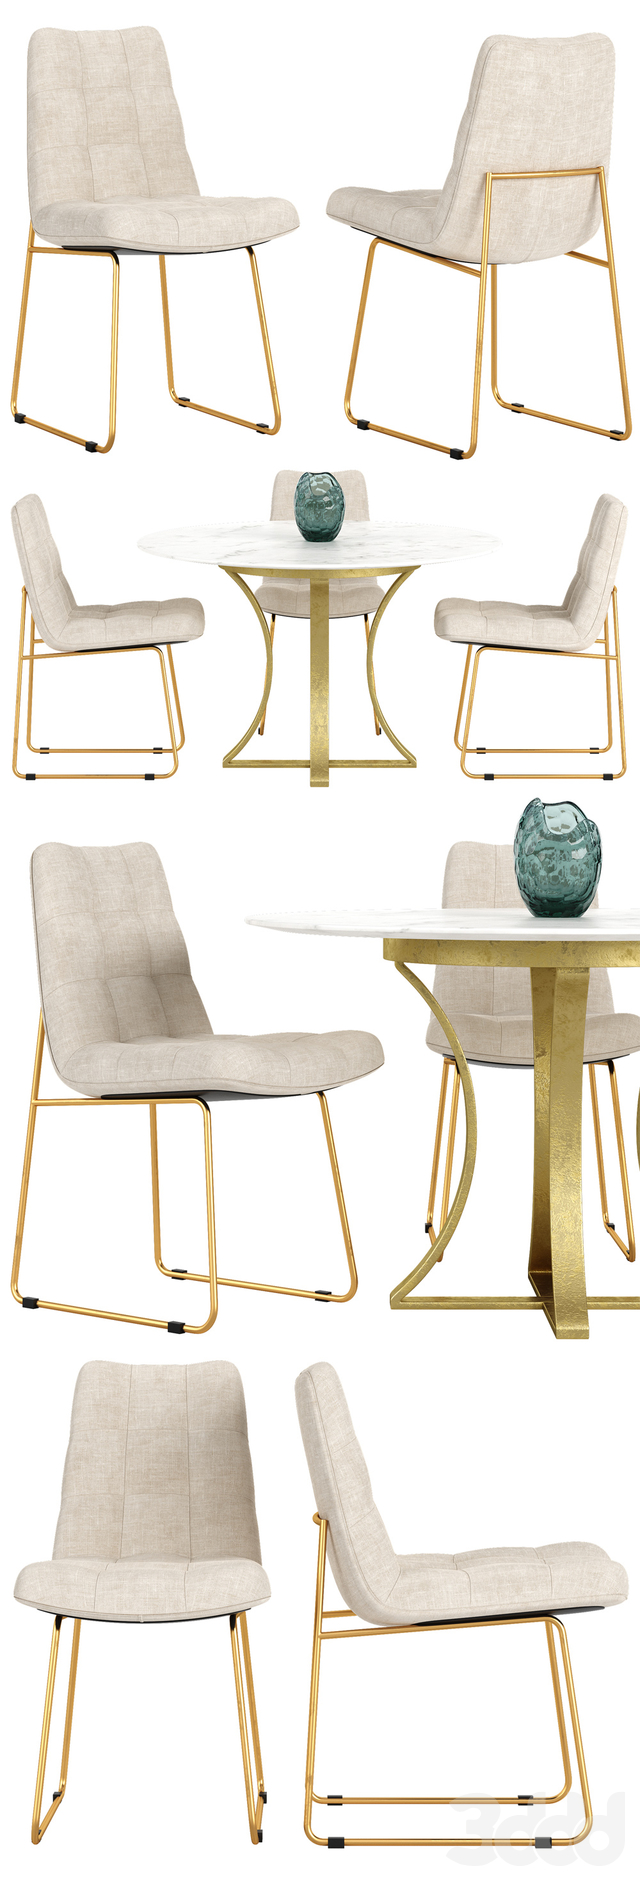 Crate and Barrel Alice chair Gage table set